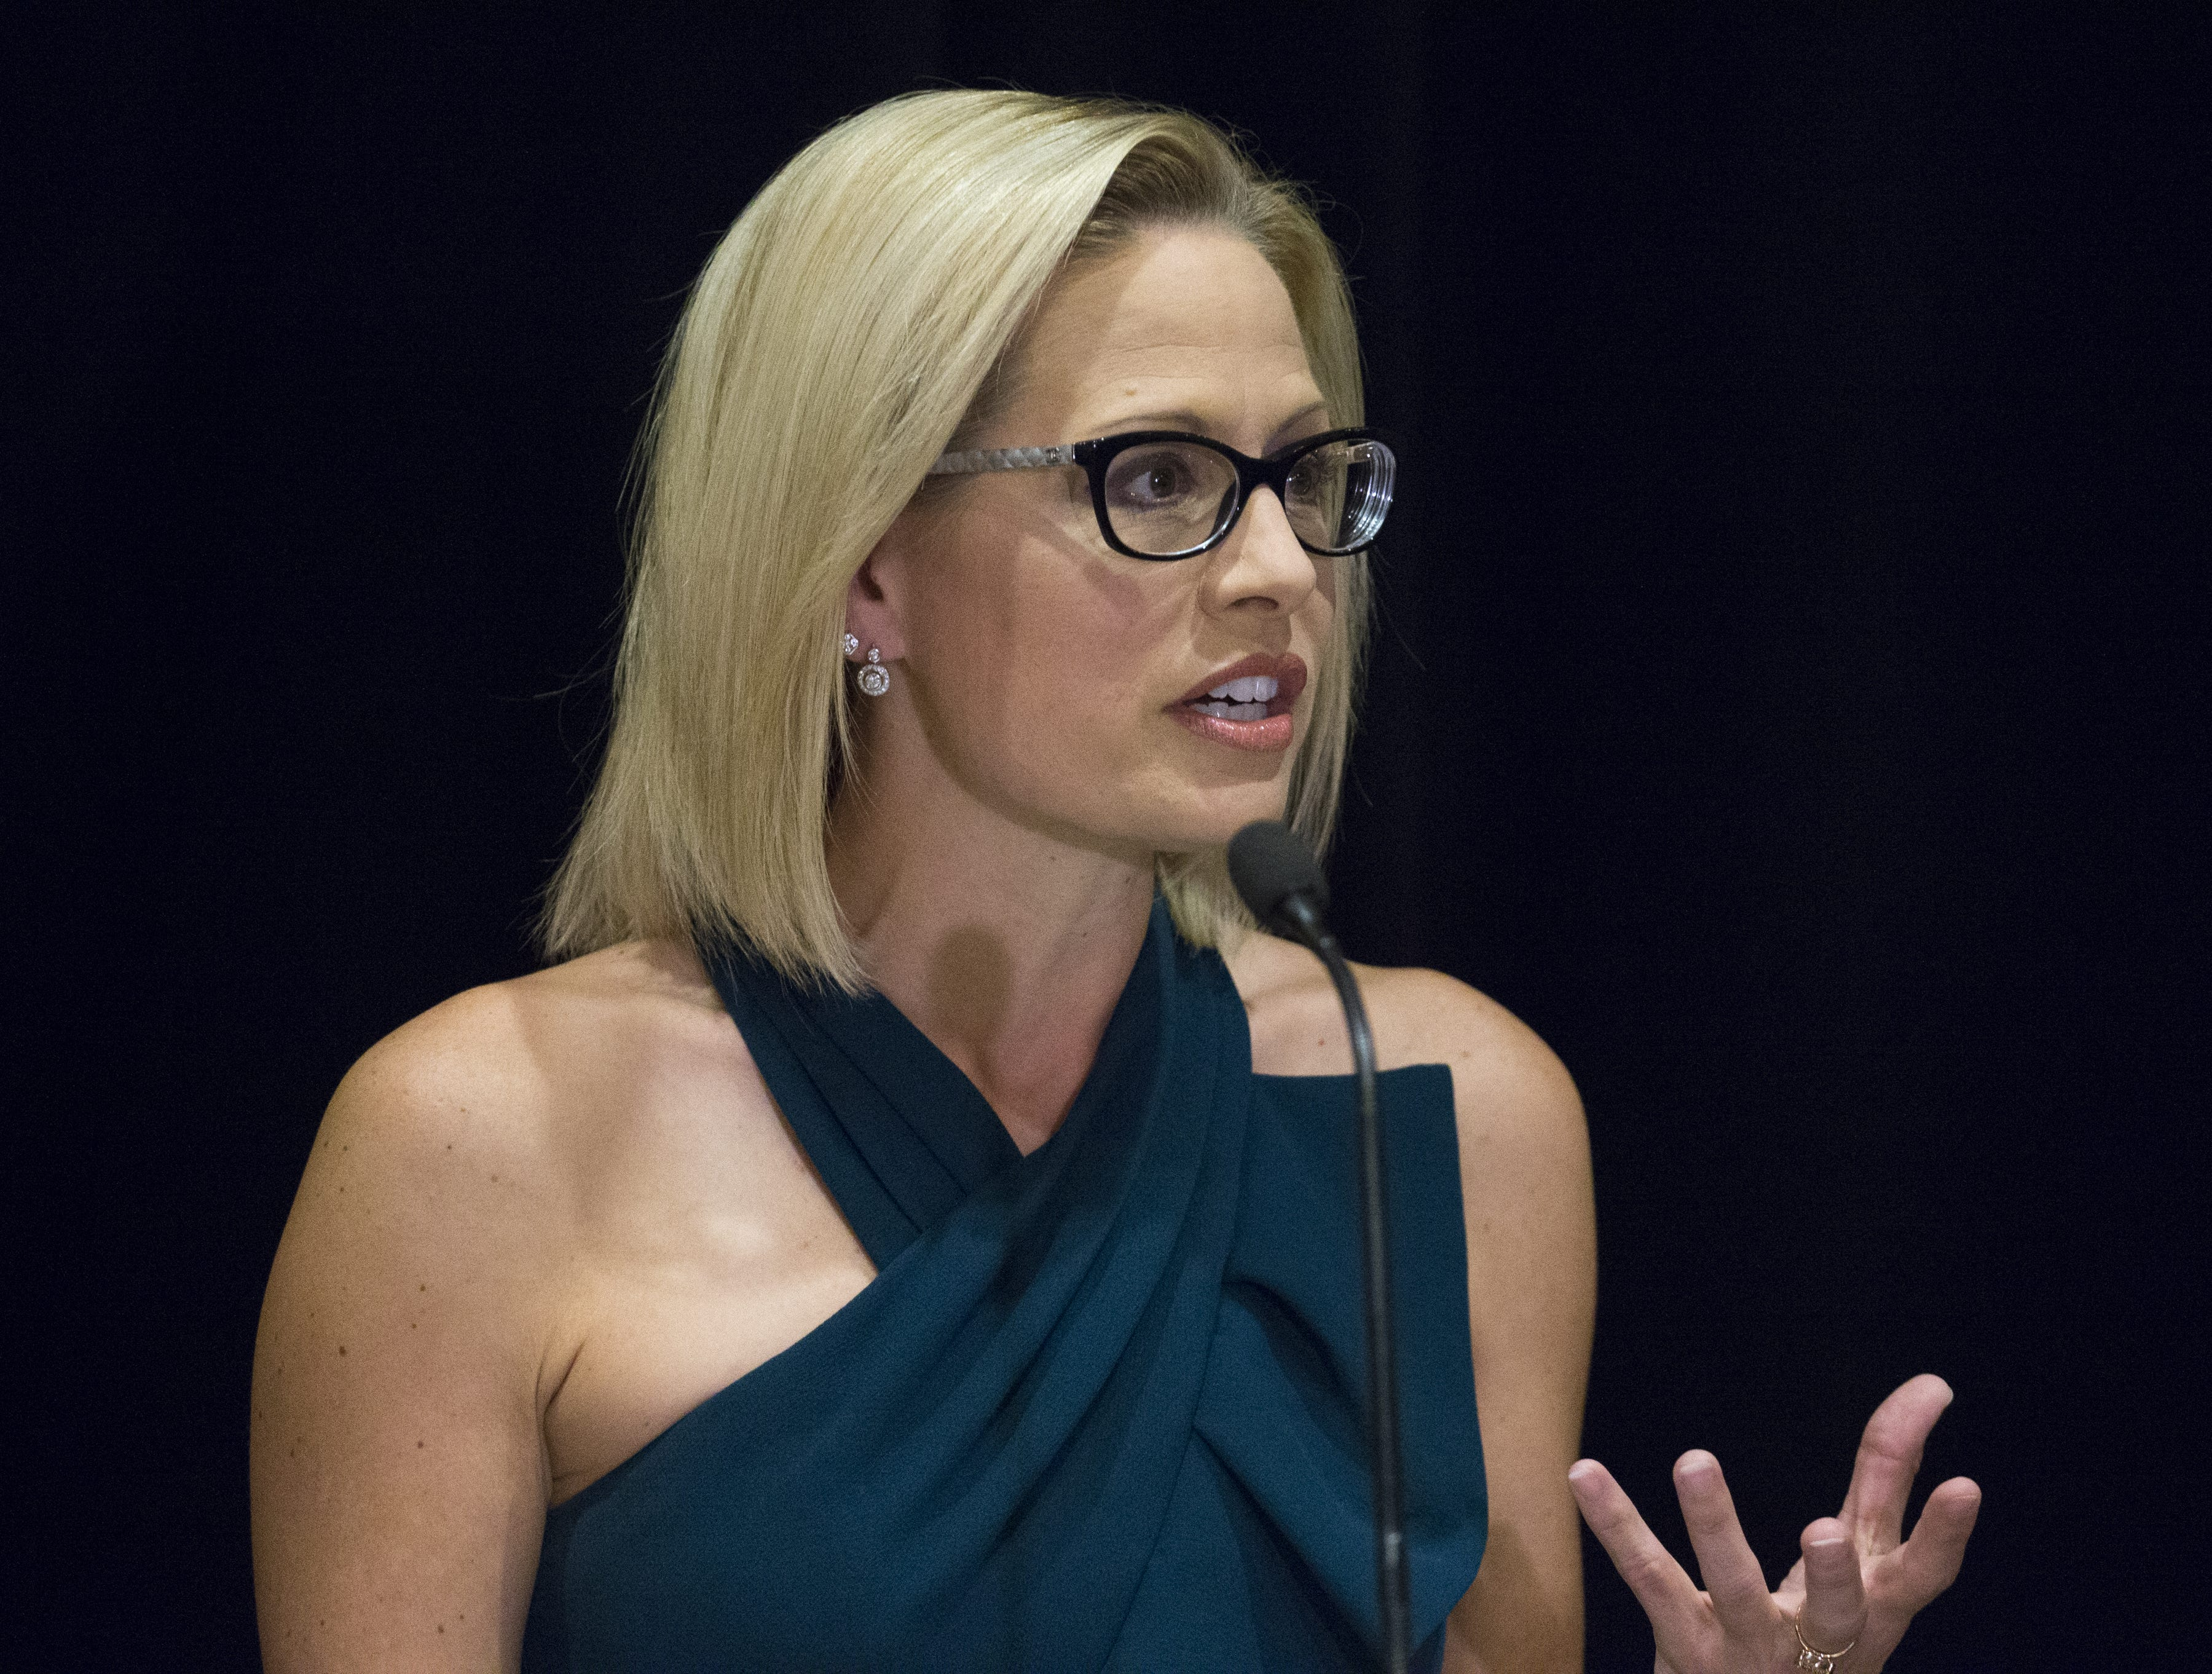 Kyrsten Sinema speaks to the press after the Associated Press declared her the winner of the U.S. Senate race against Martha McSally. 2018.